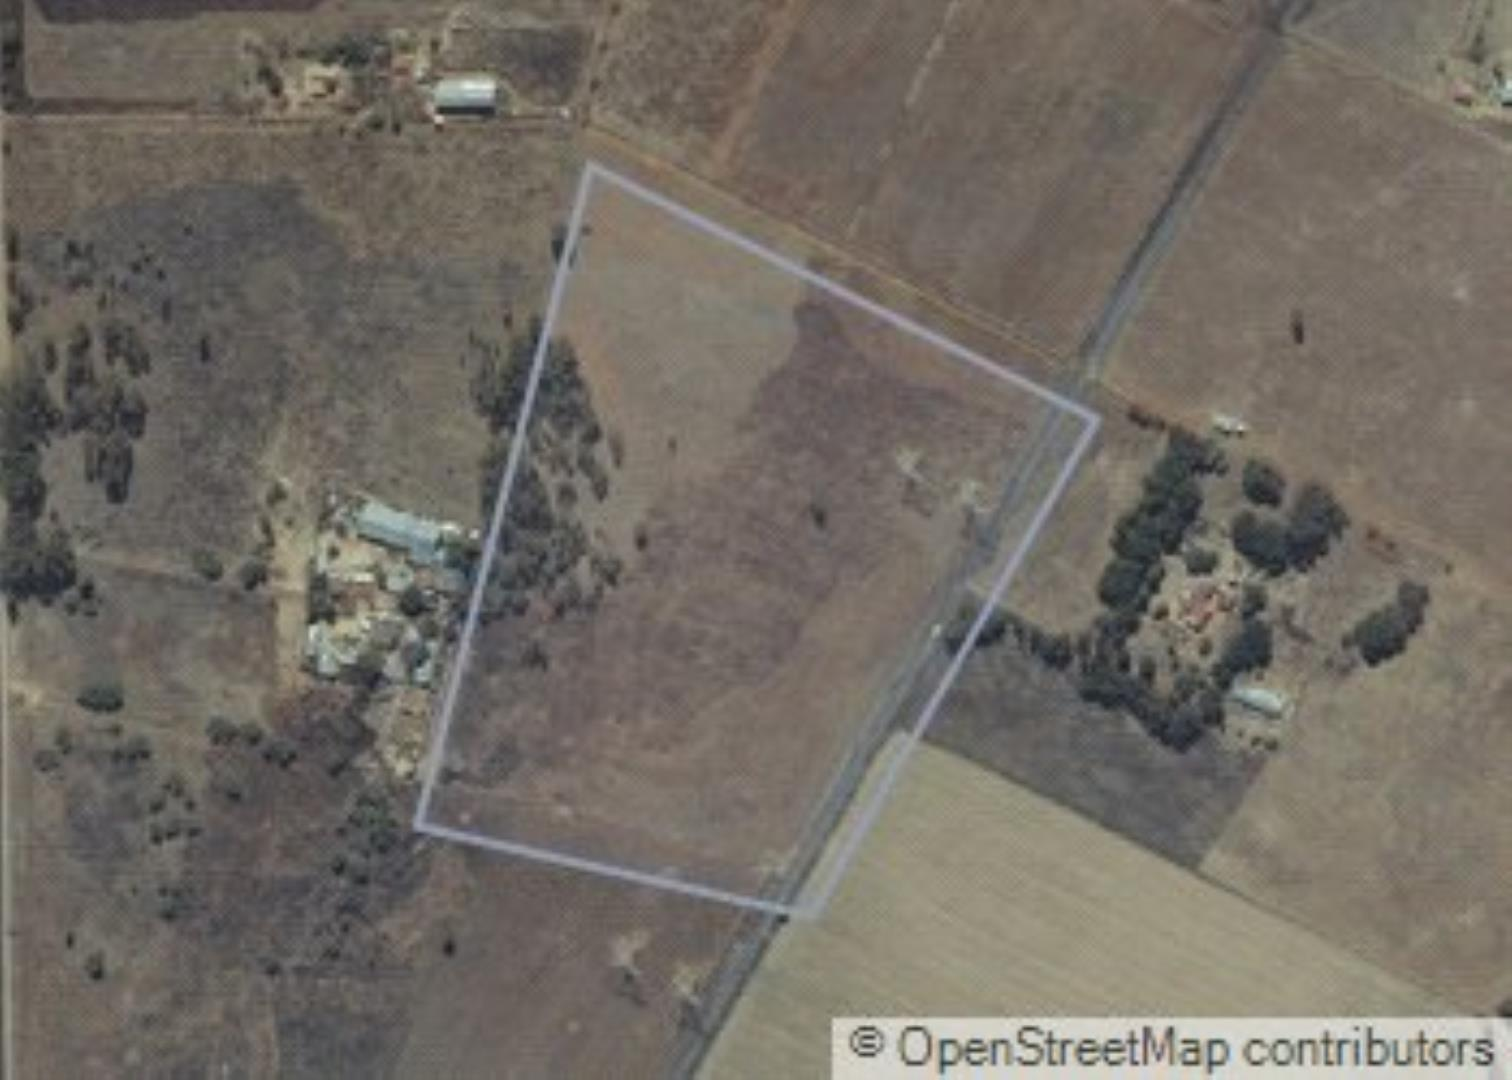 Vacant Land for Sale in Tarlton, Krugersdorp - Gauteng